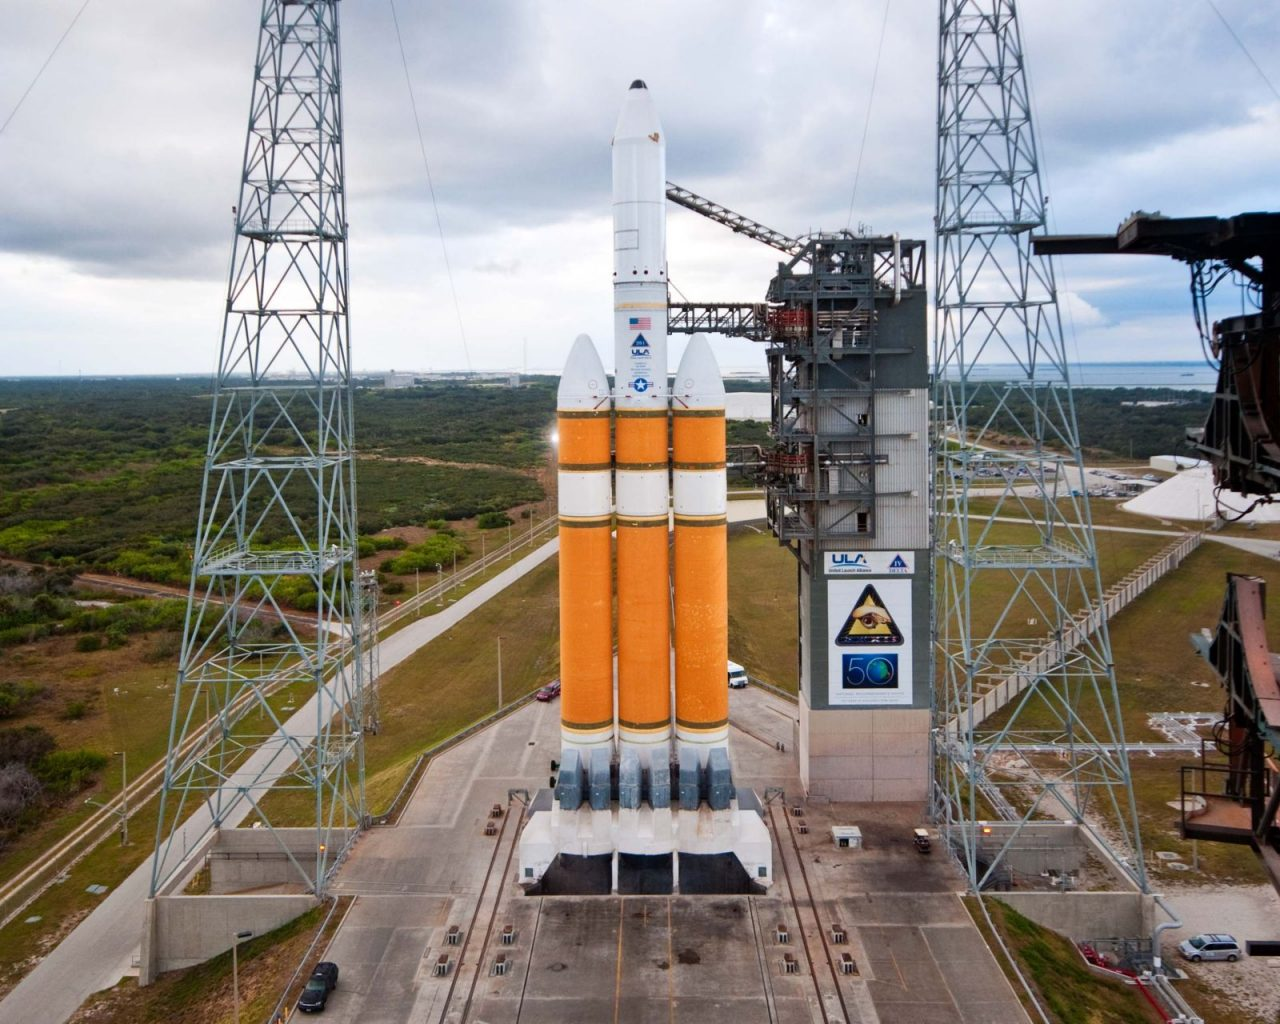 Look for Delta-4 Heavy rocket to launch today from Cape